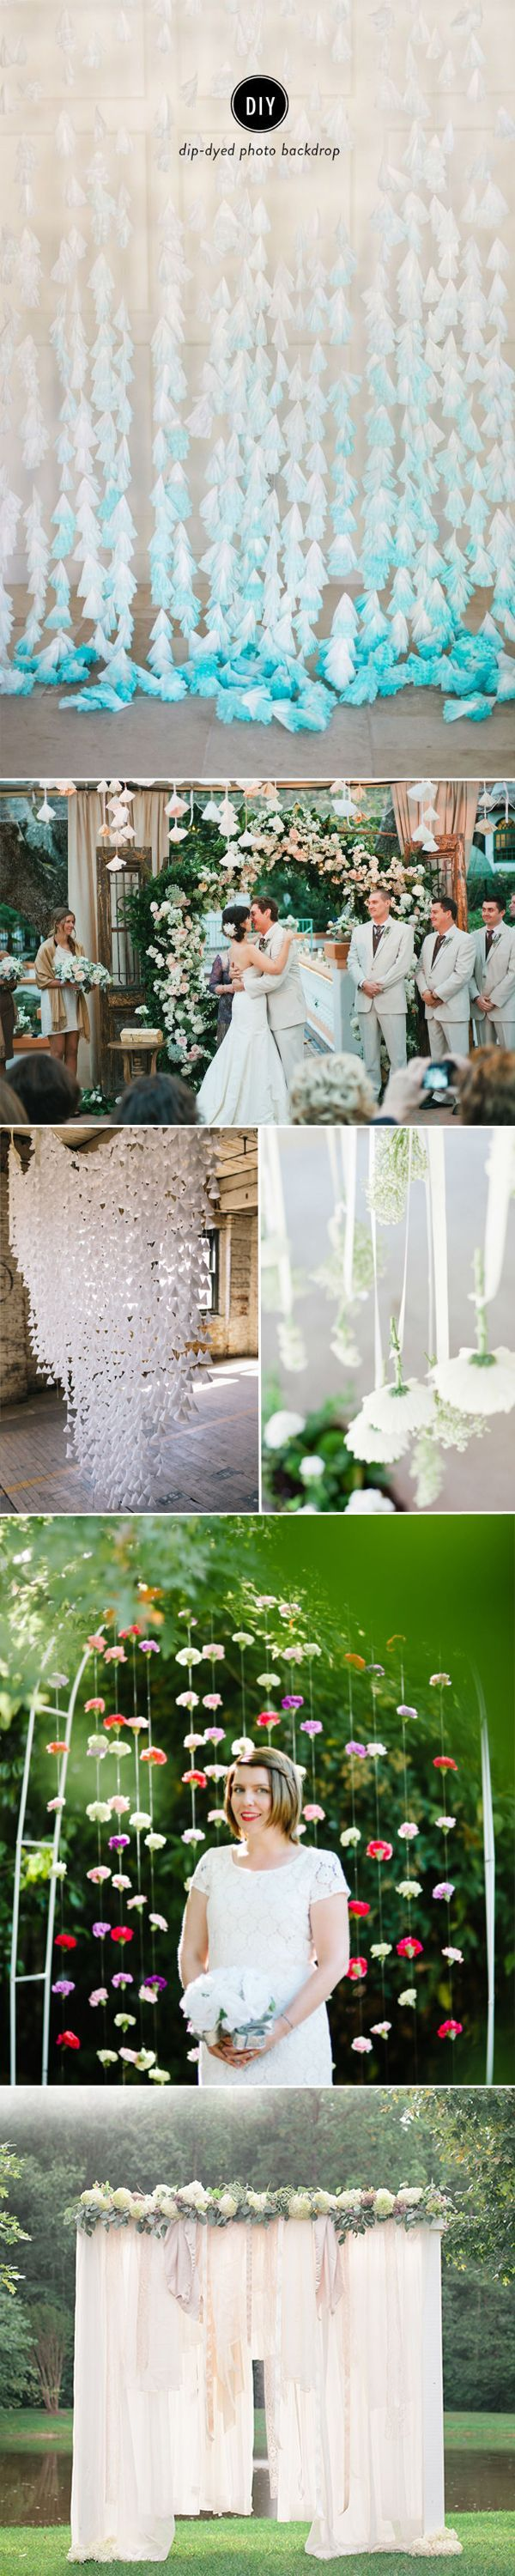 Wedding decorations at church january 2019 Best  Wedding ideas on Pinterest  Wedding ideas Wedding stuff